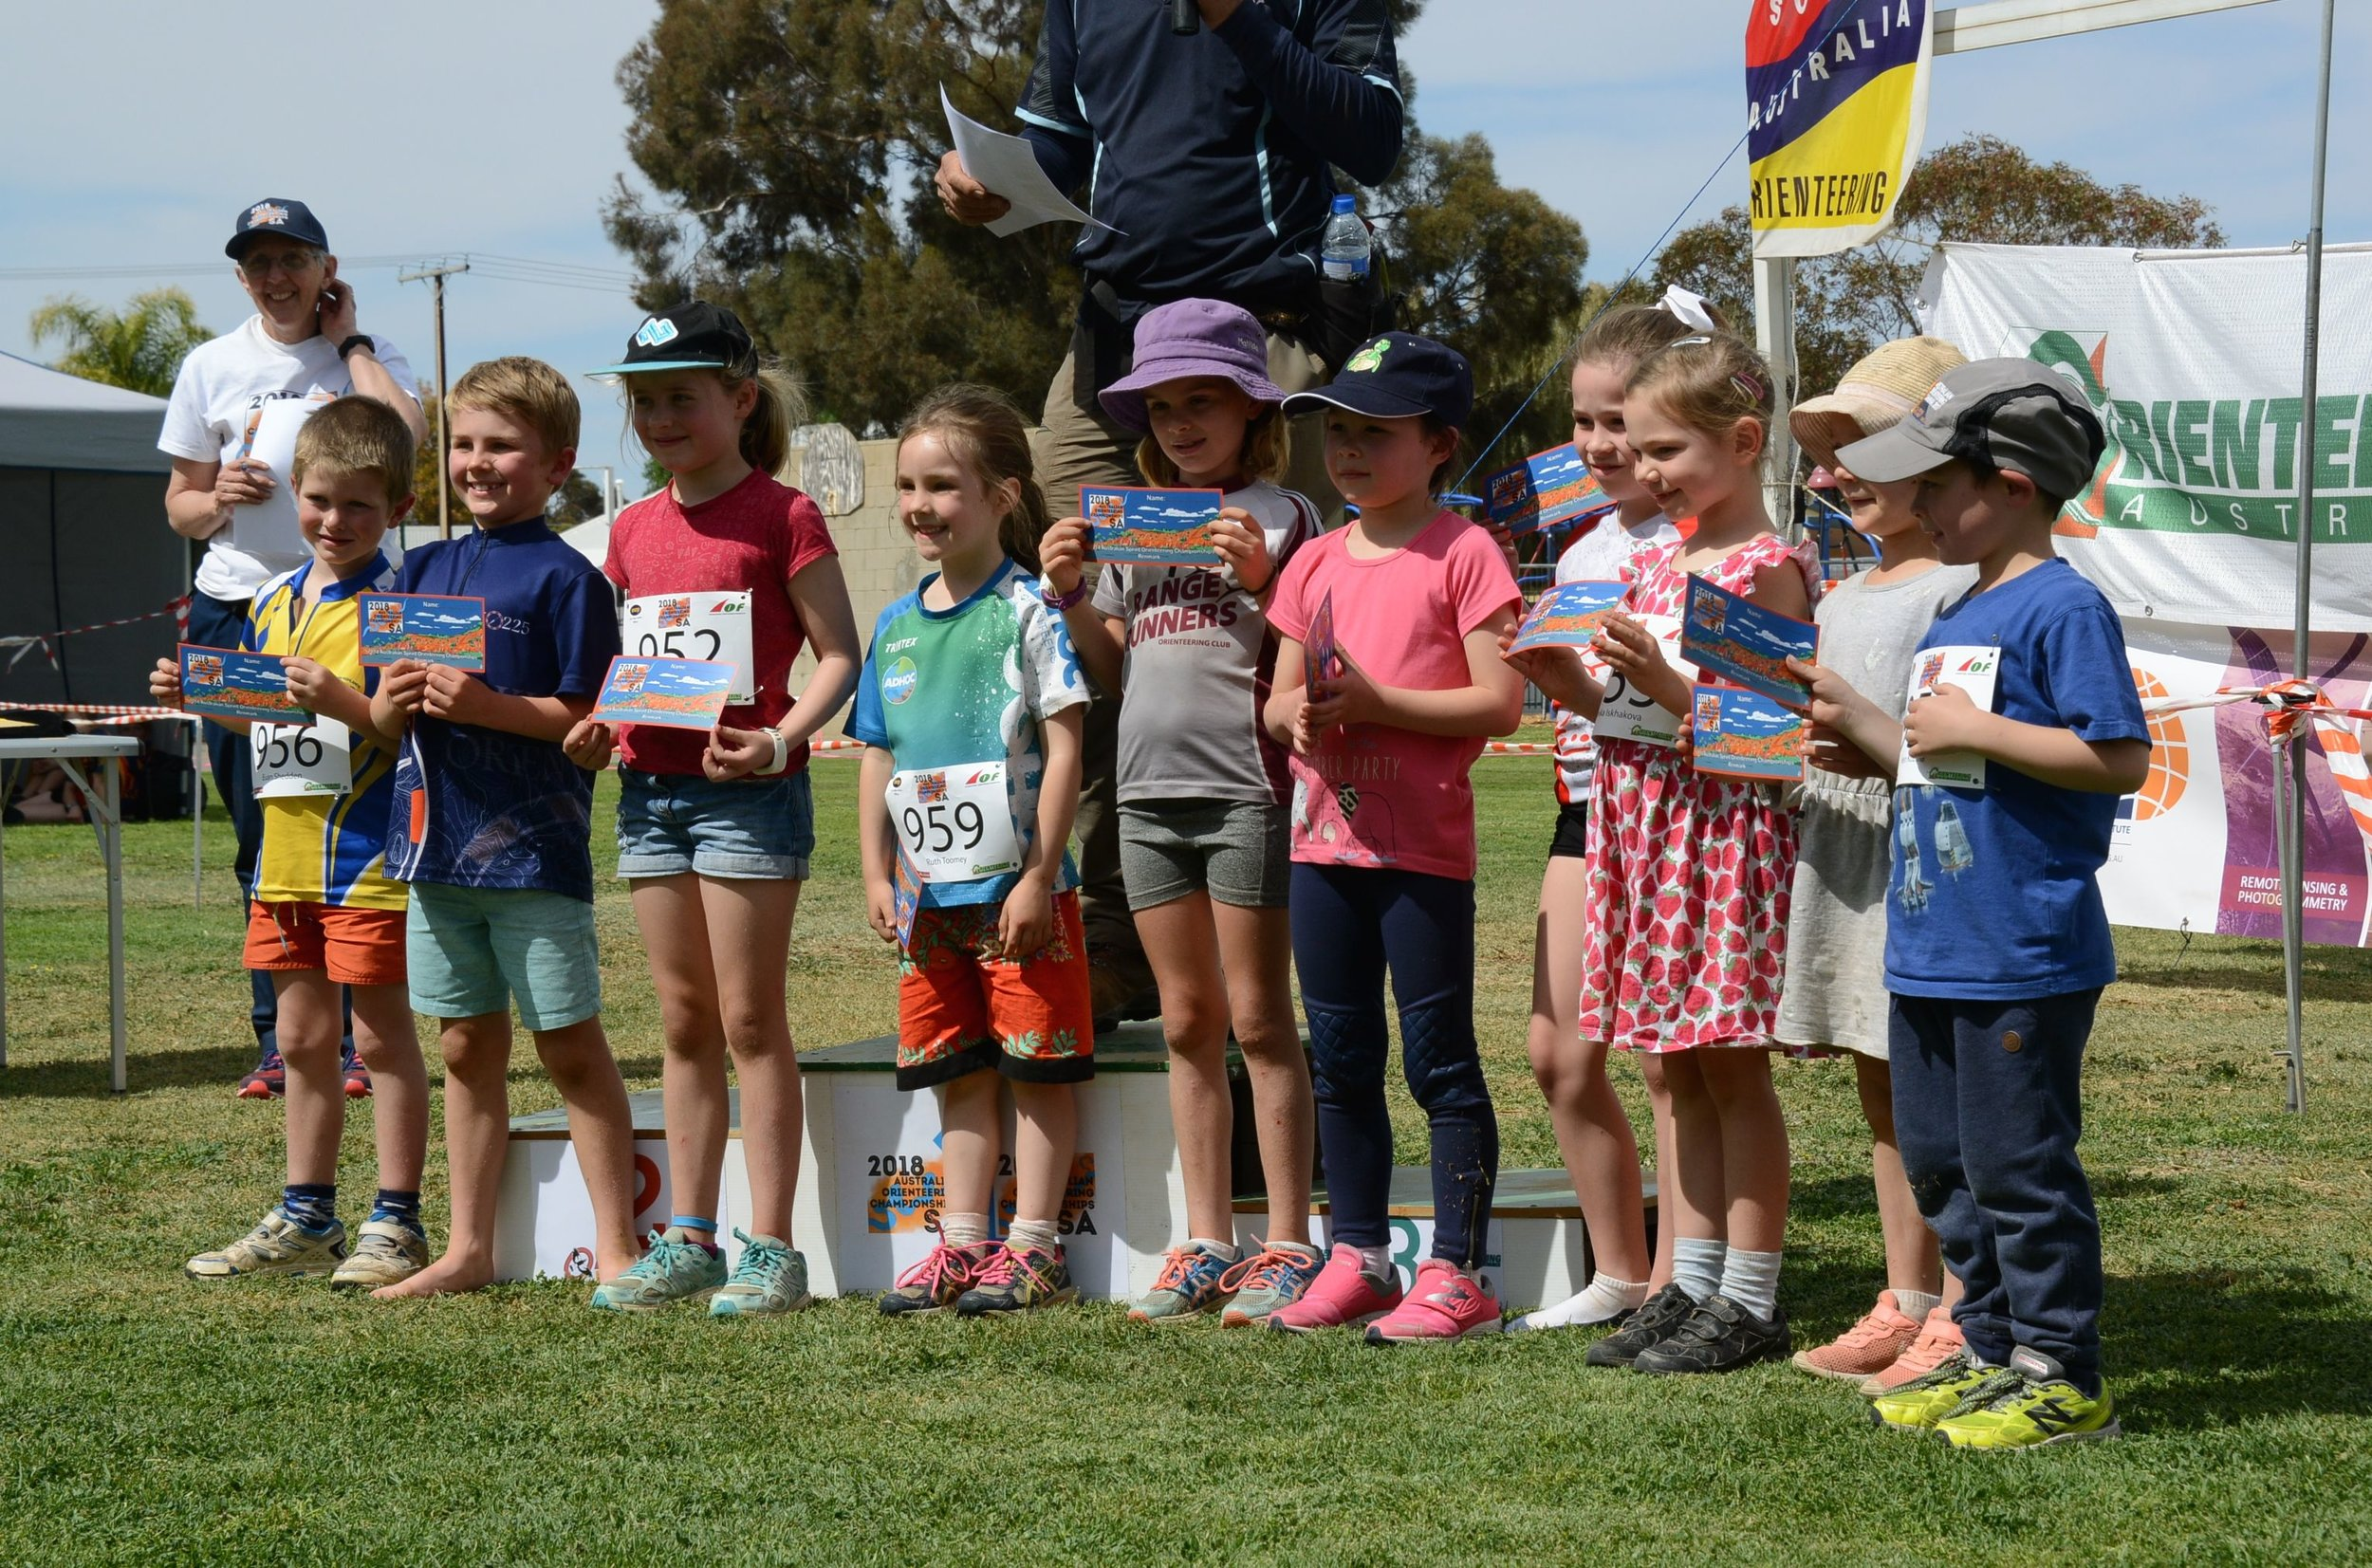 One of our young 'Sneakers' at the Australian Championships in 2018